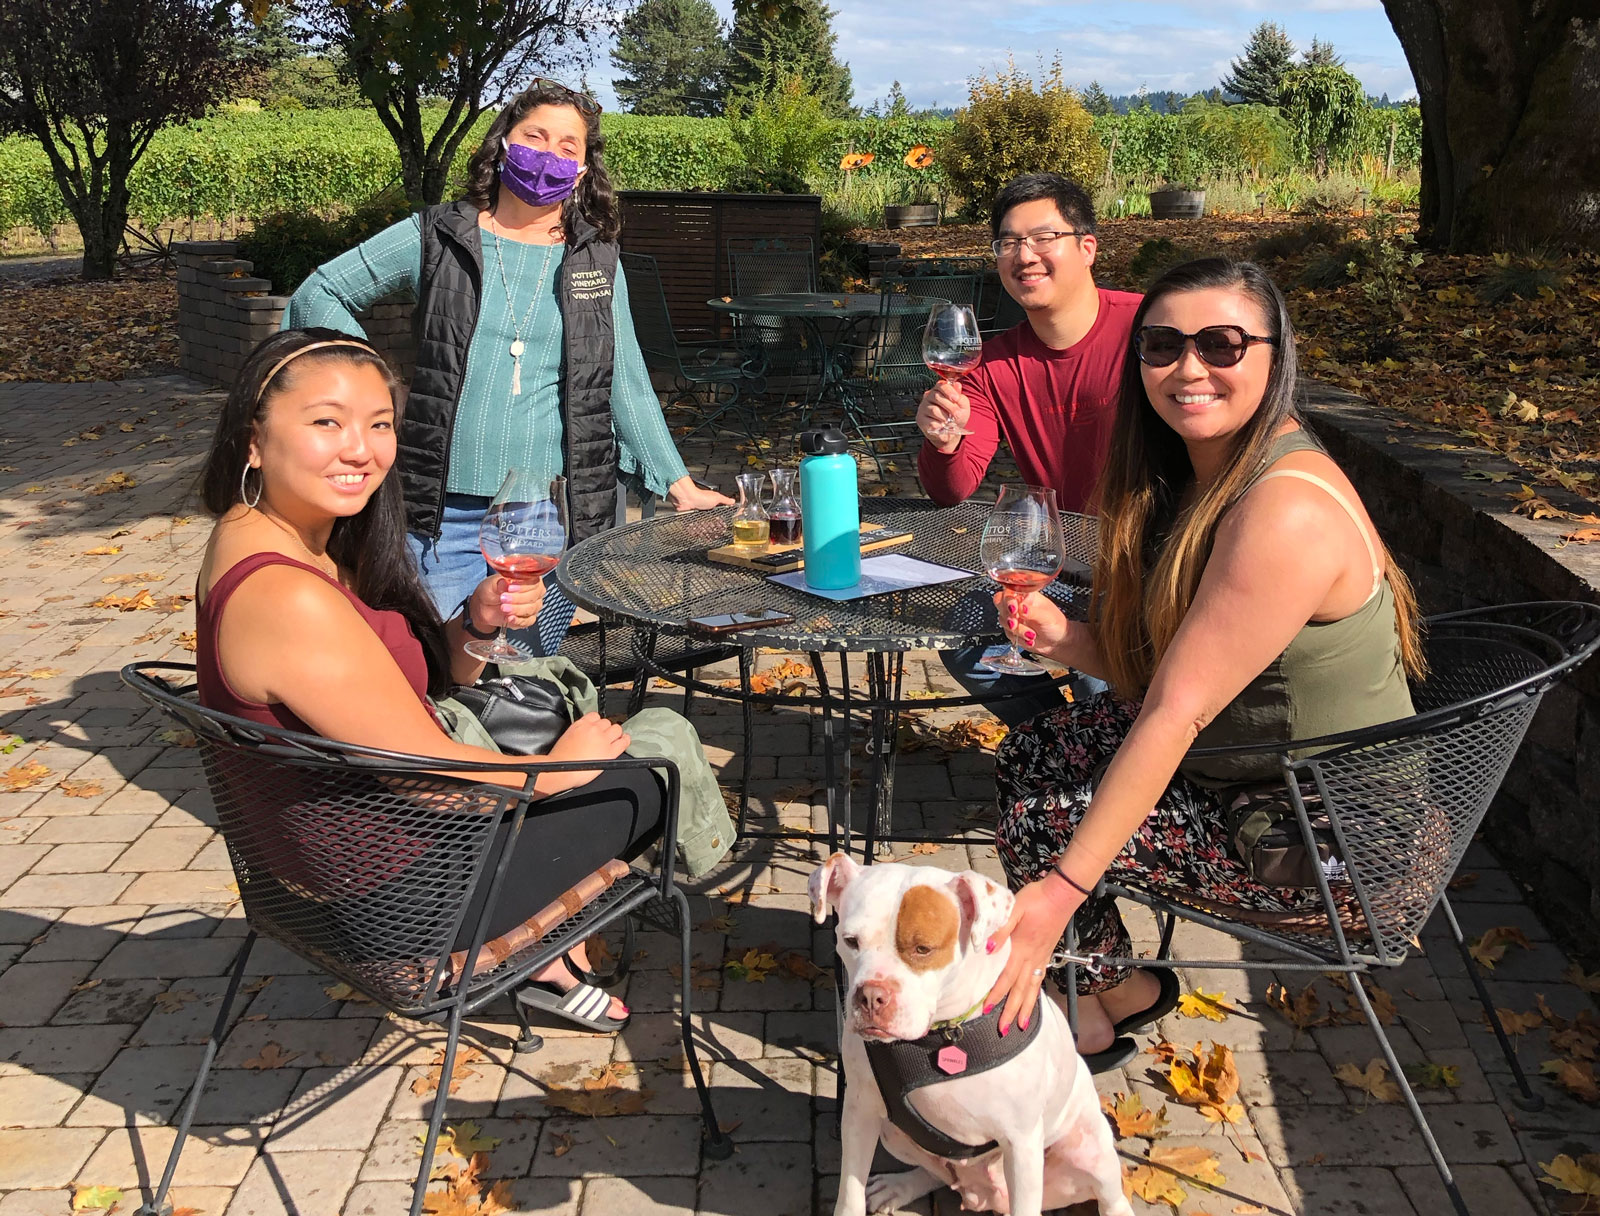 Guests tasting on the patio with their dog